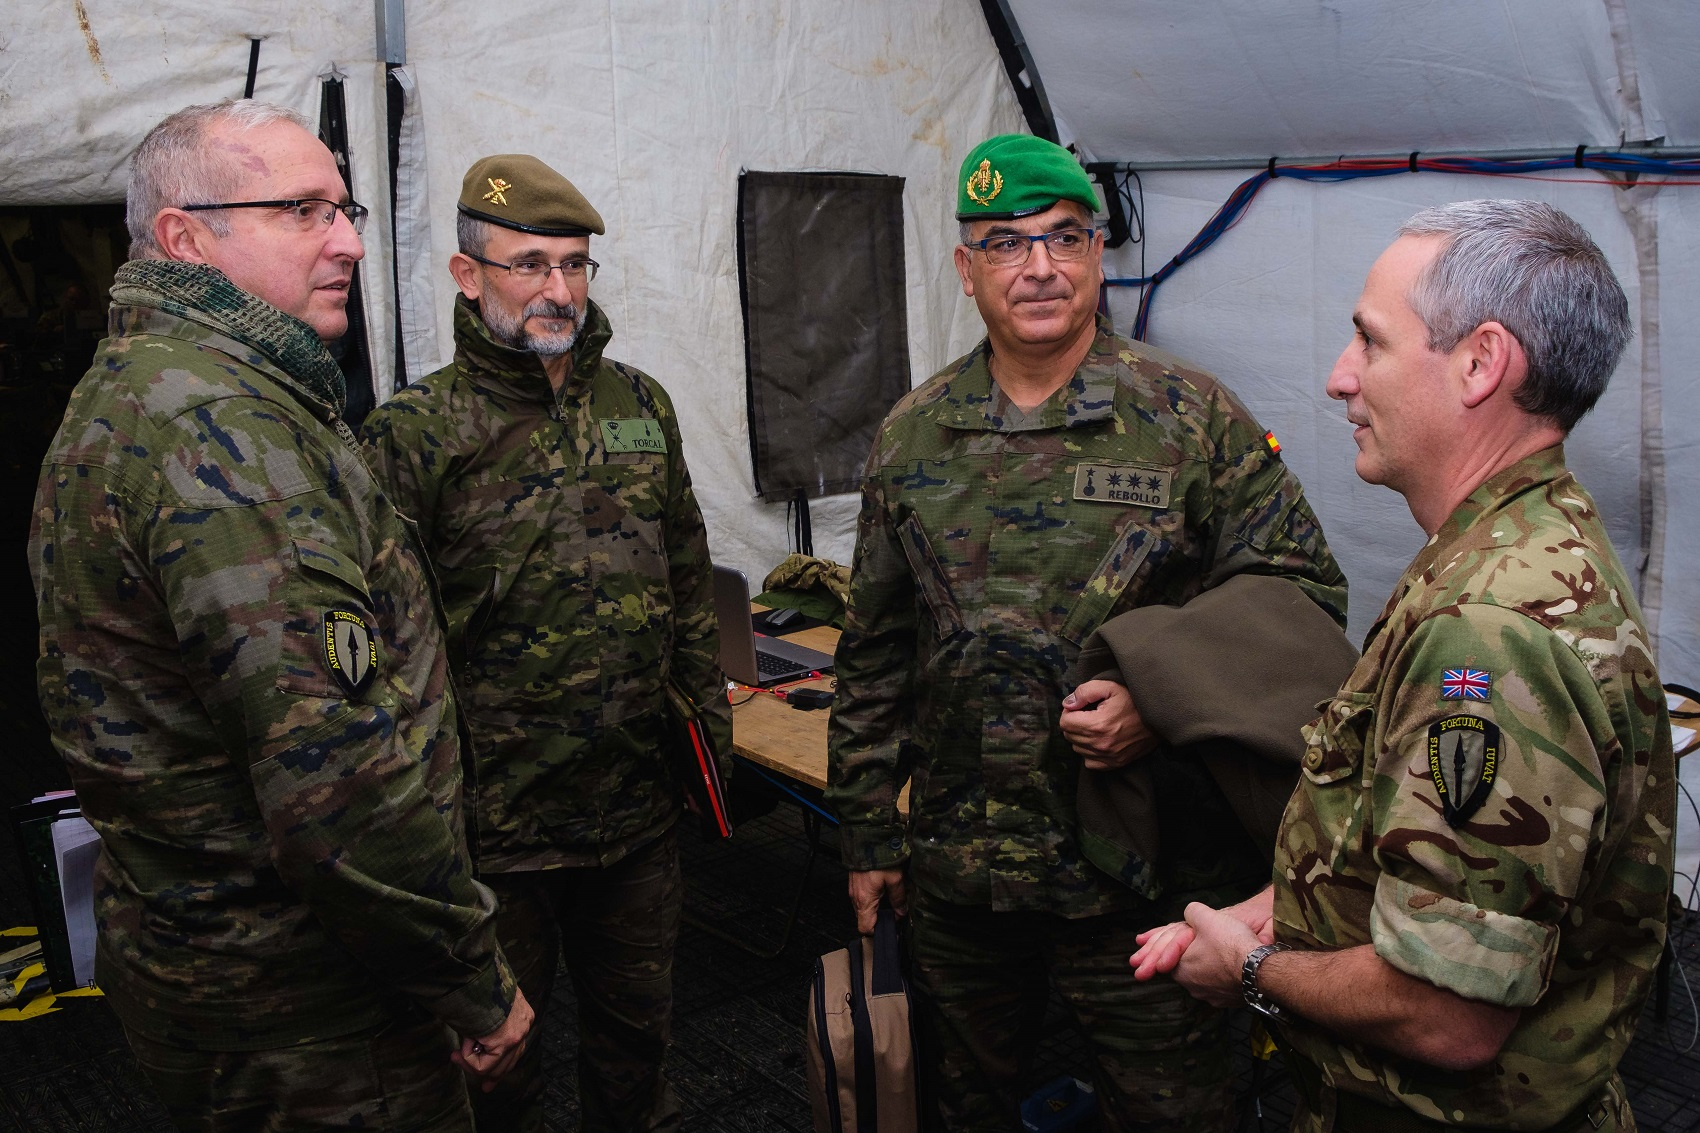 Spanish personnel take part in the exercise Arcade Fusion from the Allied Rapid Reaction Corps